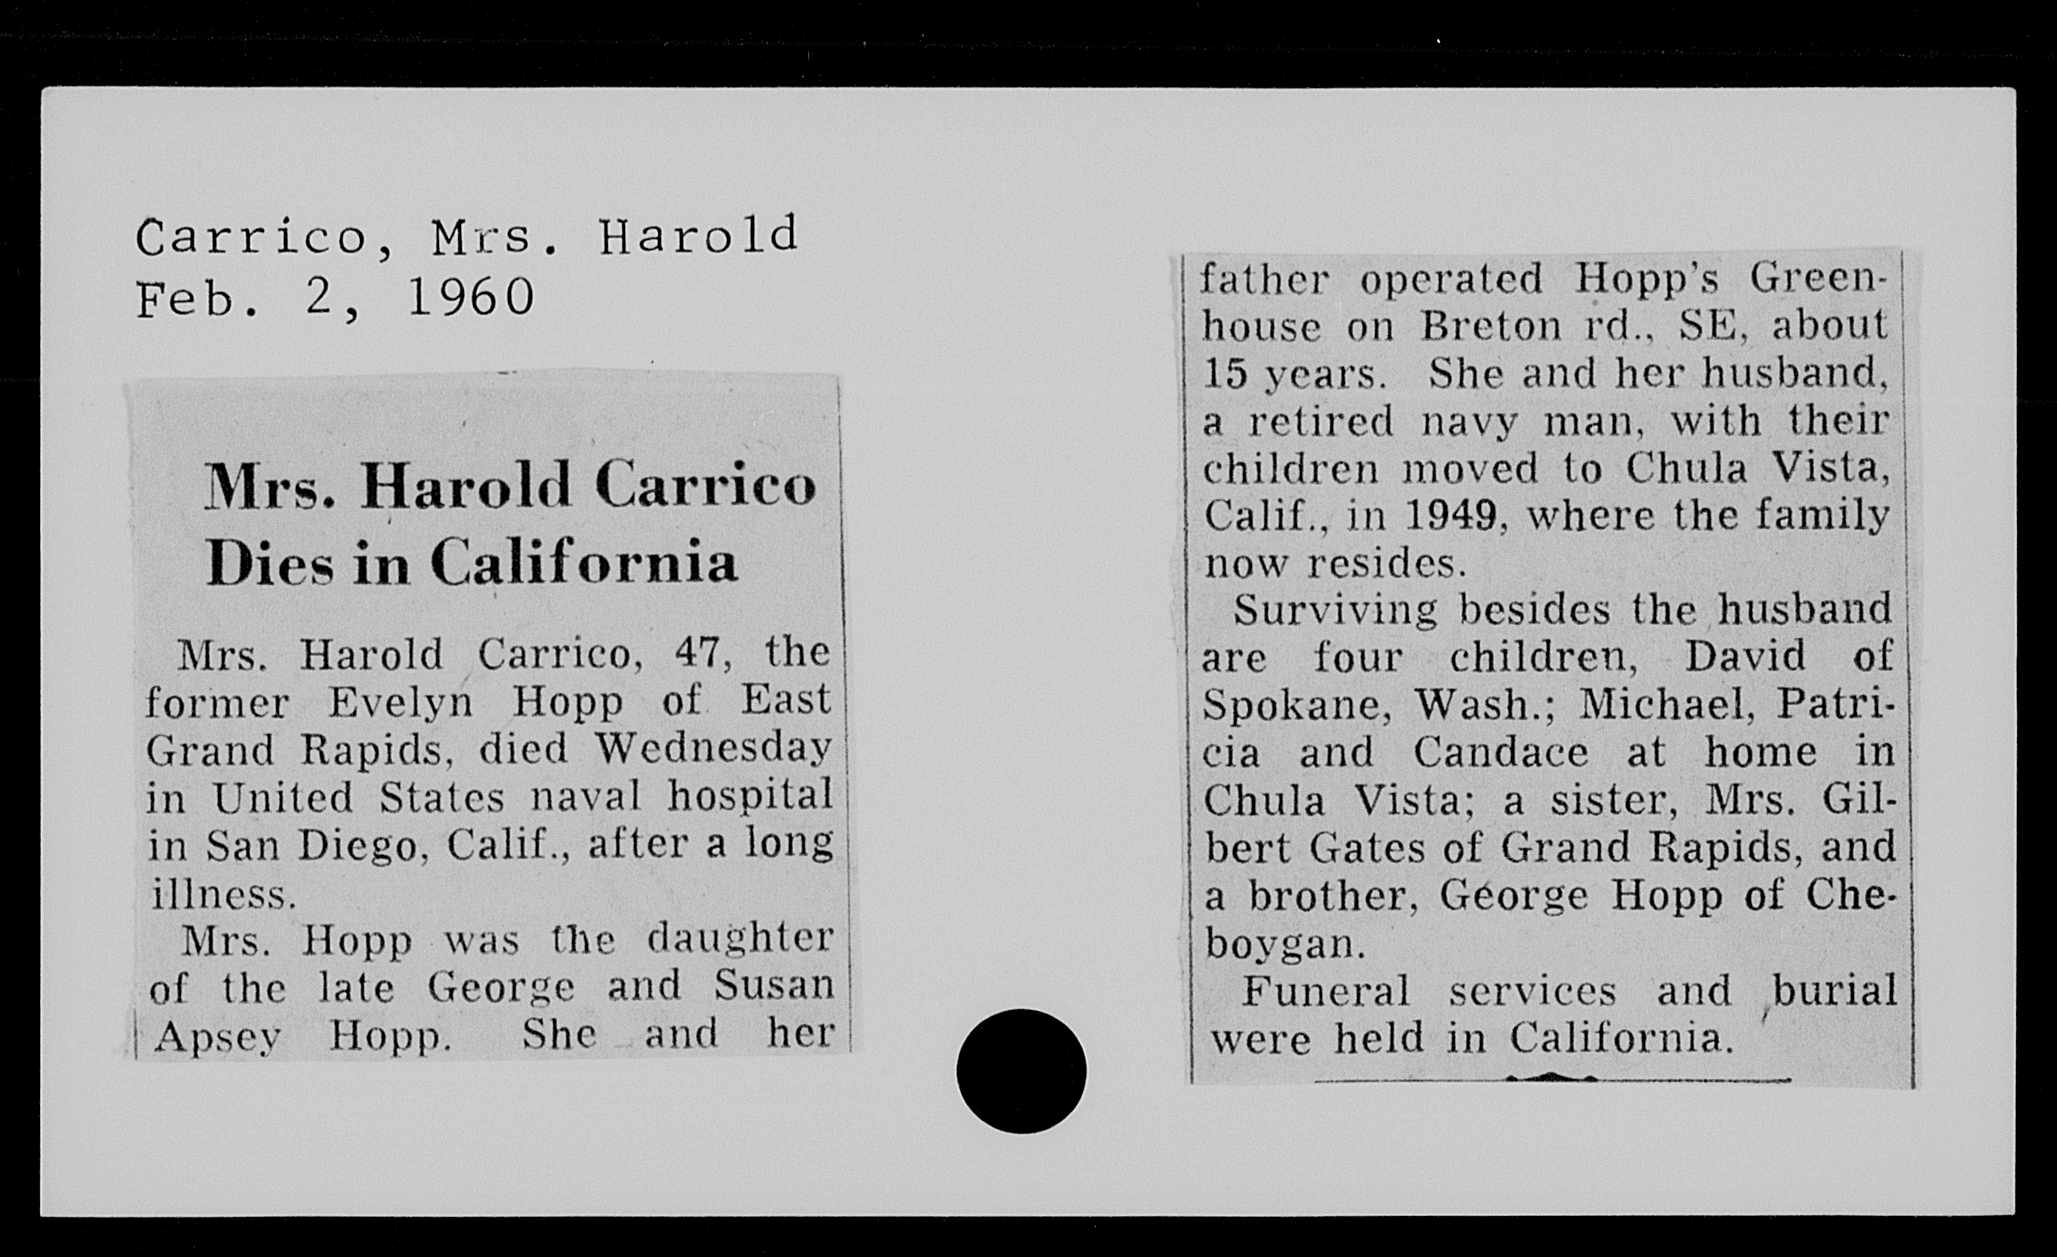 evelyn hopp carrico obit